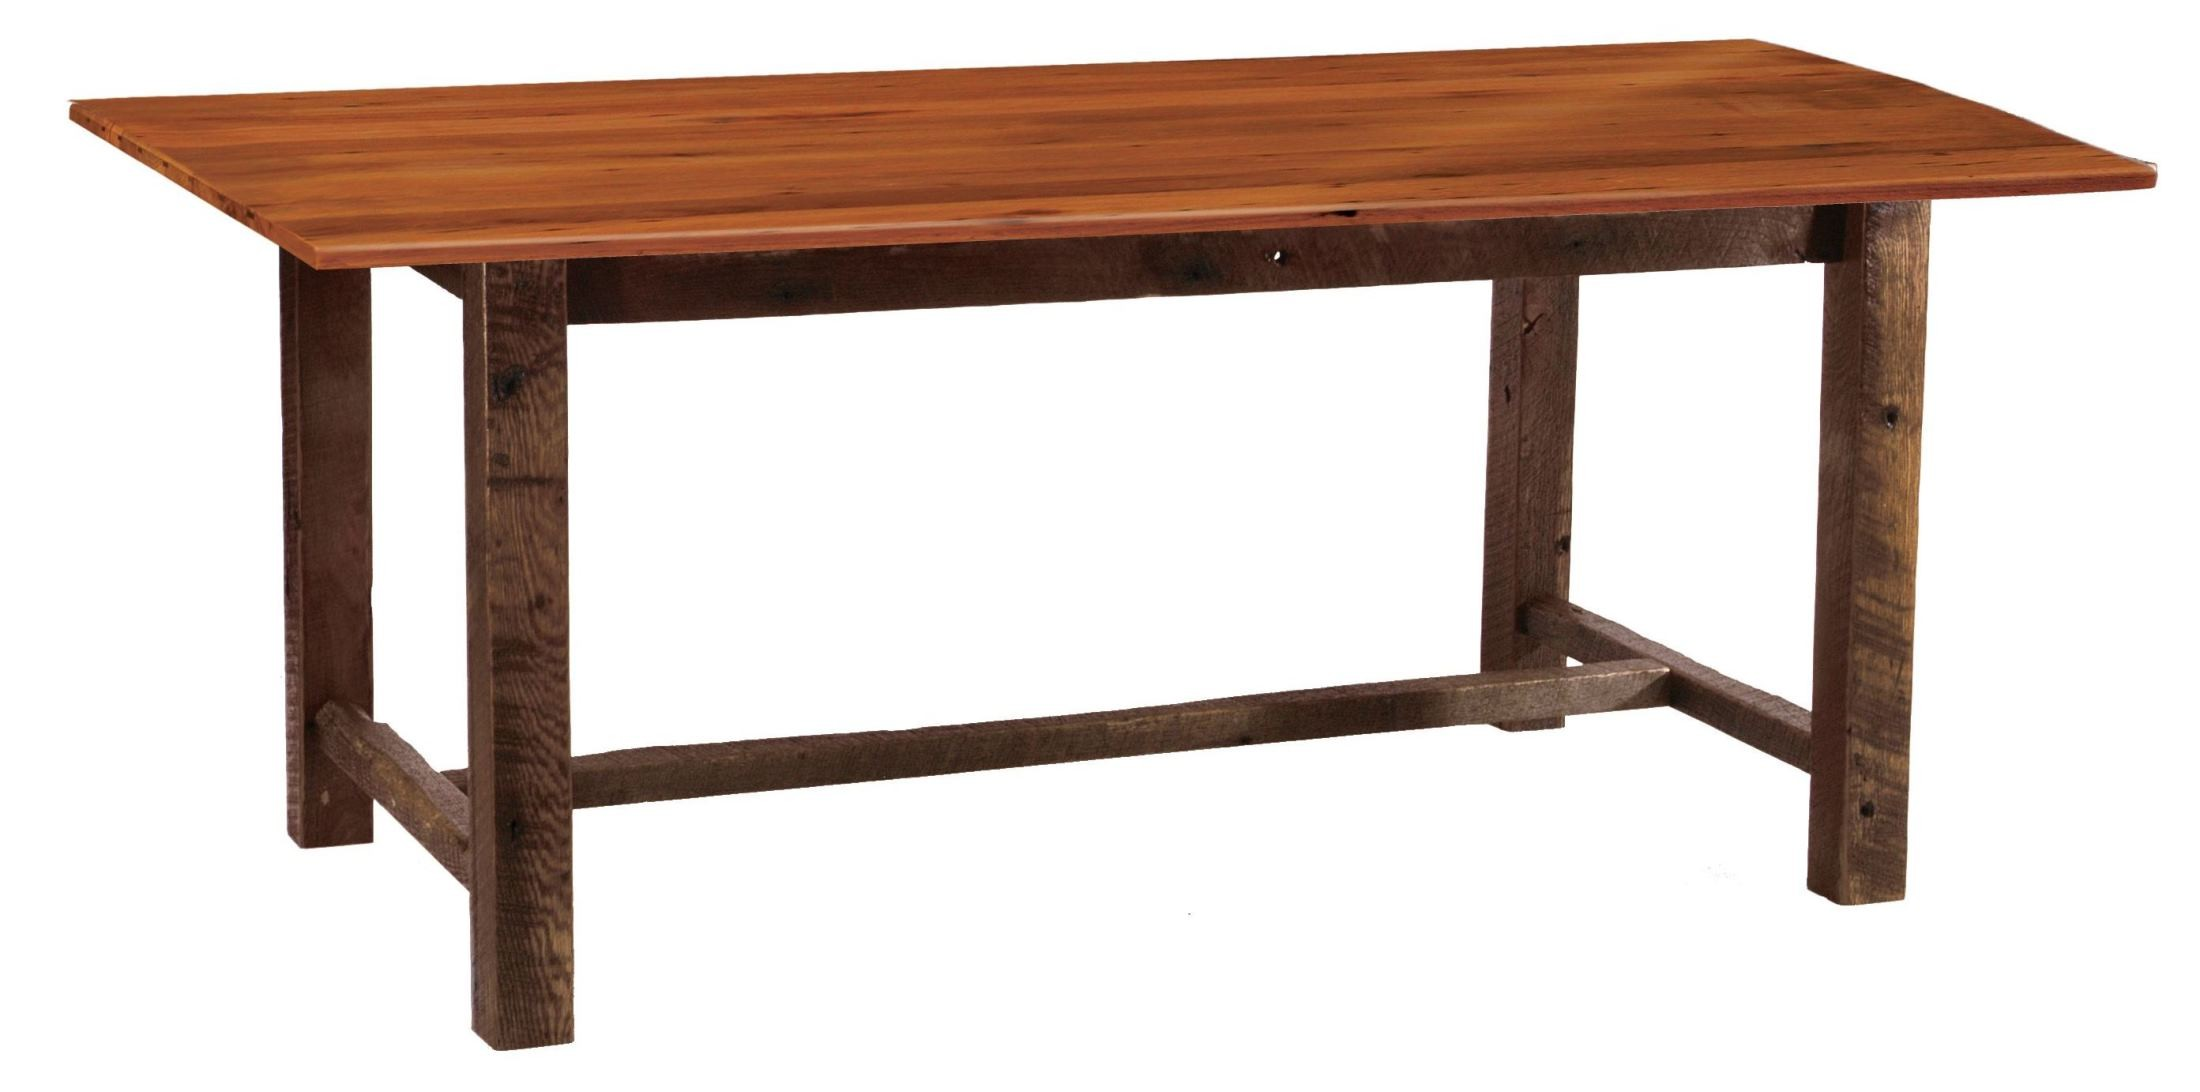 "Barnwood Farmhouse 96"" Antique Oak Top Rectangular Dining Table from Fir"